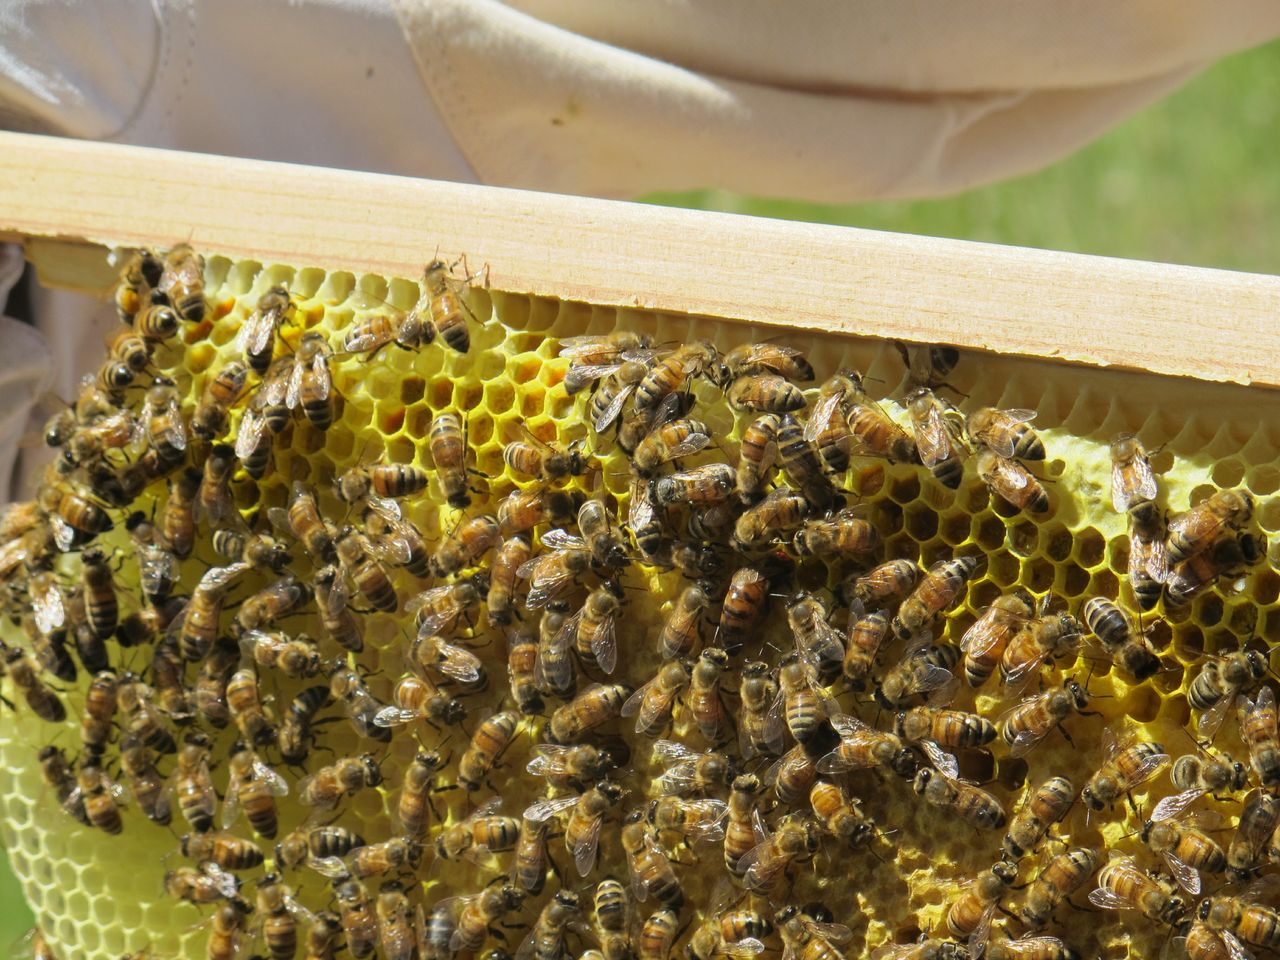 Bees - close shot of bees and queen bee with only abdomen exposed as she dips into comb - courtesy Doug Mendonca